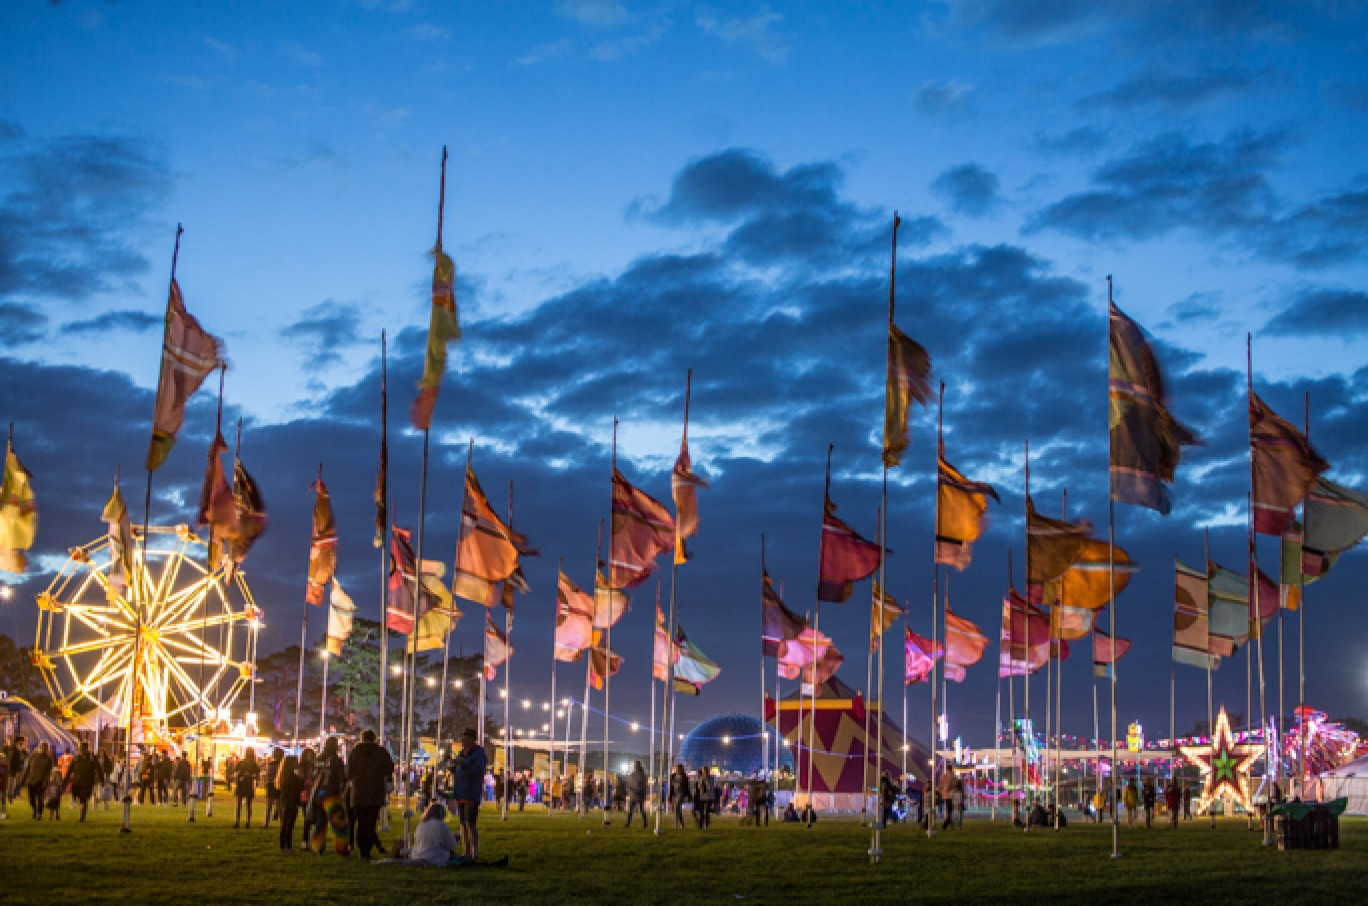 6_143-camp-bestival-friday-224821501585119